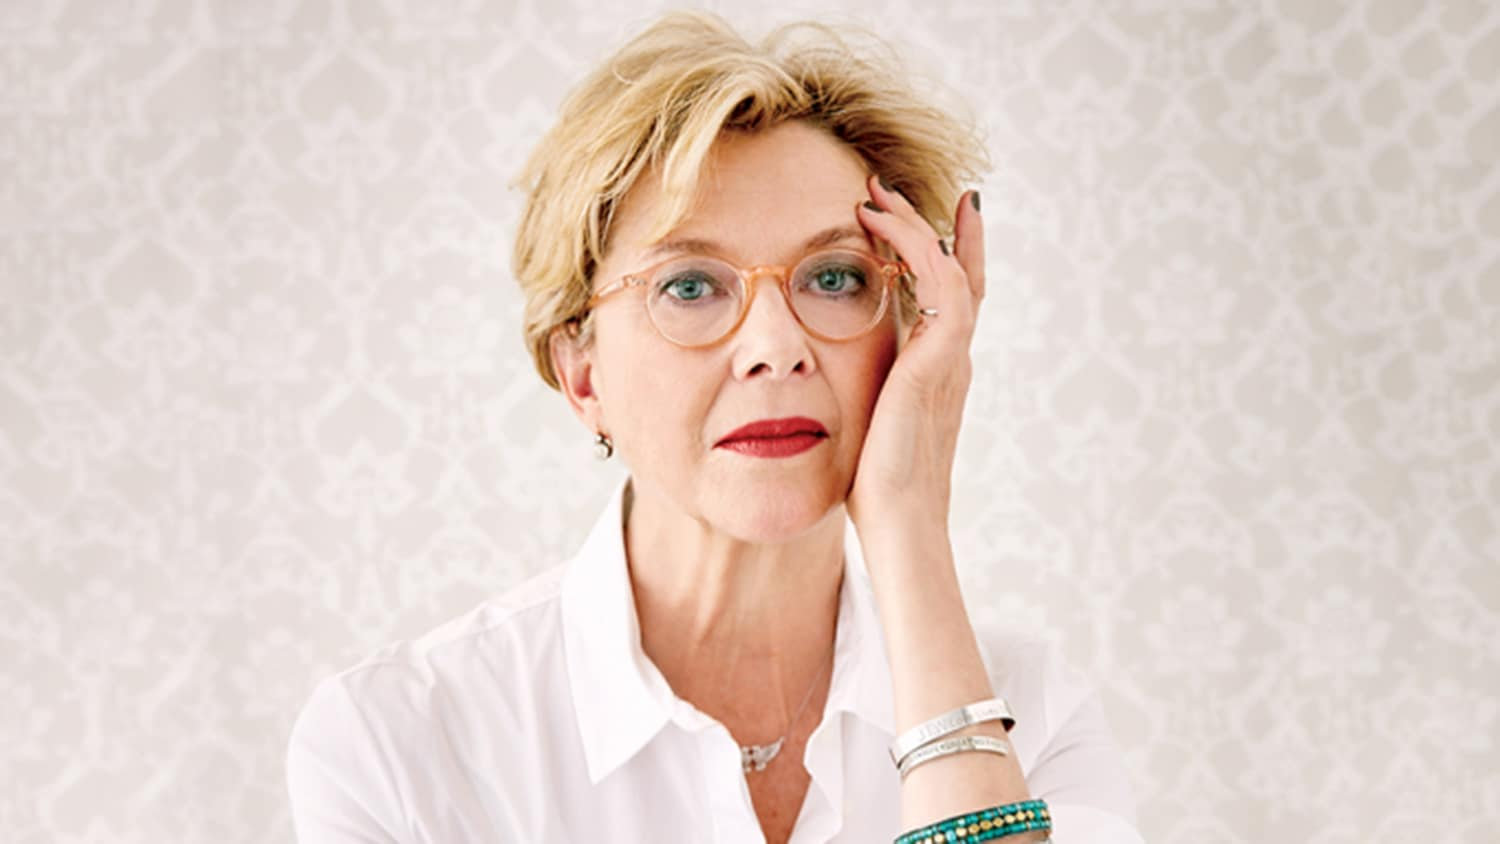 Annette Bening At 61 The Kids Really Are All Right So The Empty Nester Moves On Sixty And Me